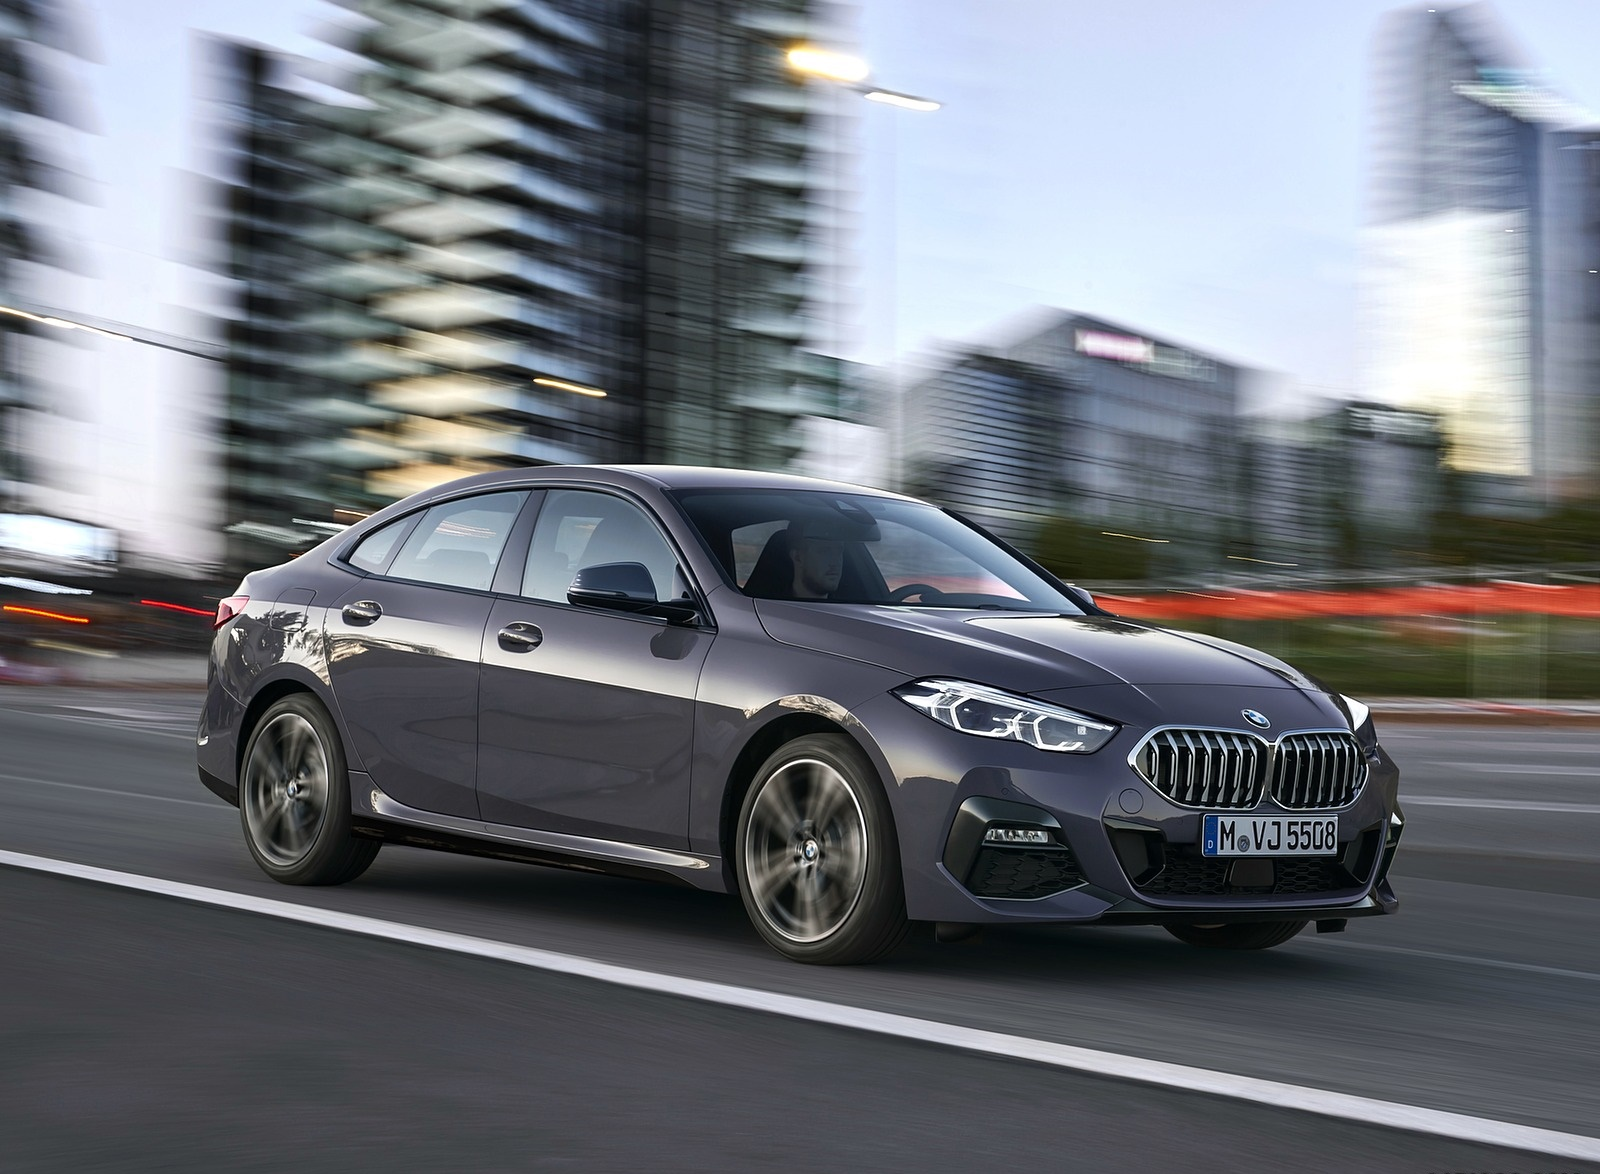 2020 BMW 2 Series 220d Gran Coupe M Sport (Color: Storm Bay Metallic) Front Three-Quarter Wallpapers (8)